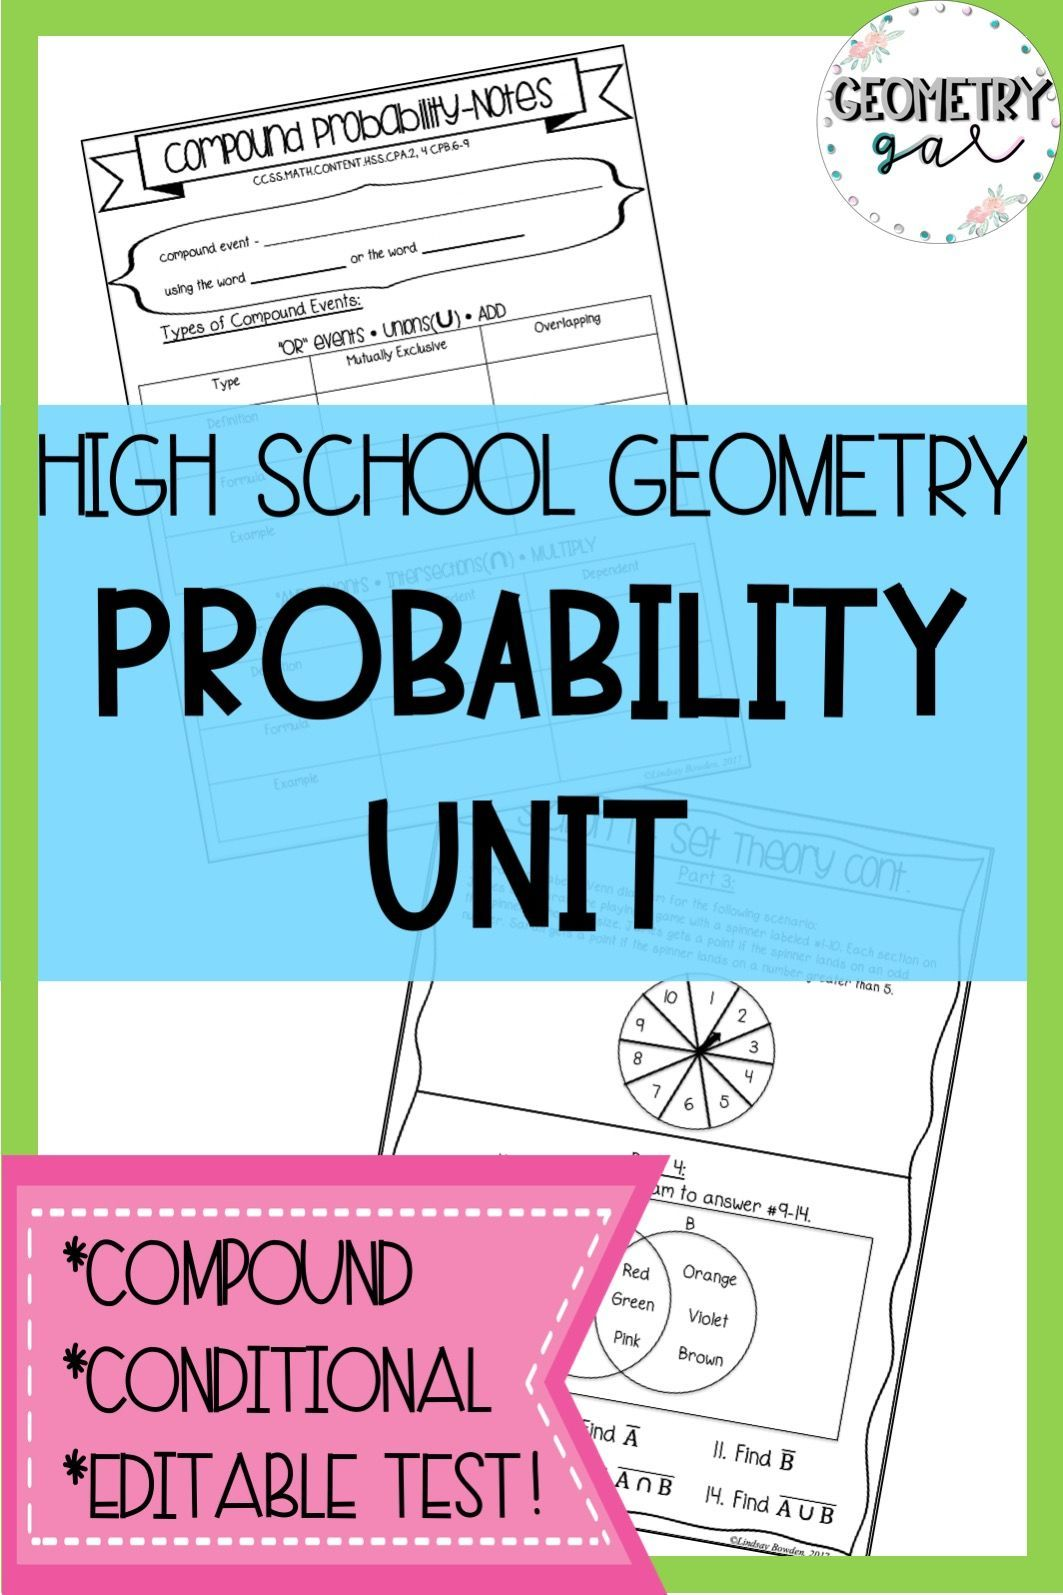 High School Probability Unit This Unit Covers Set Theory Compound Probability And Con Probability Worksheets High School Geometry Notes Geometry High School